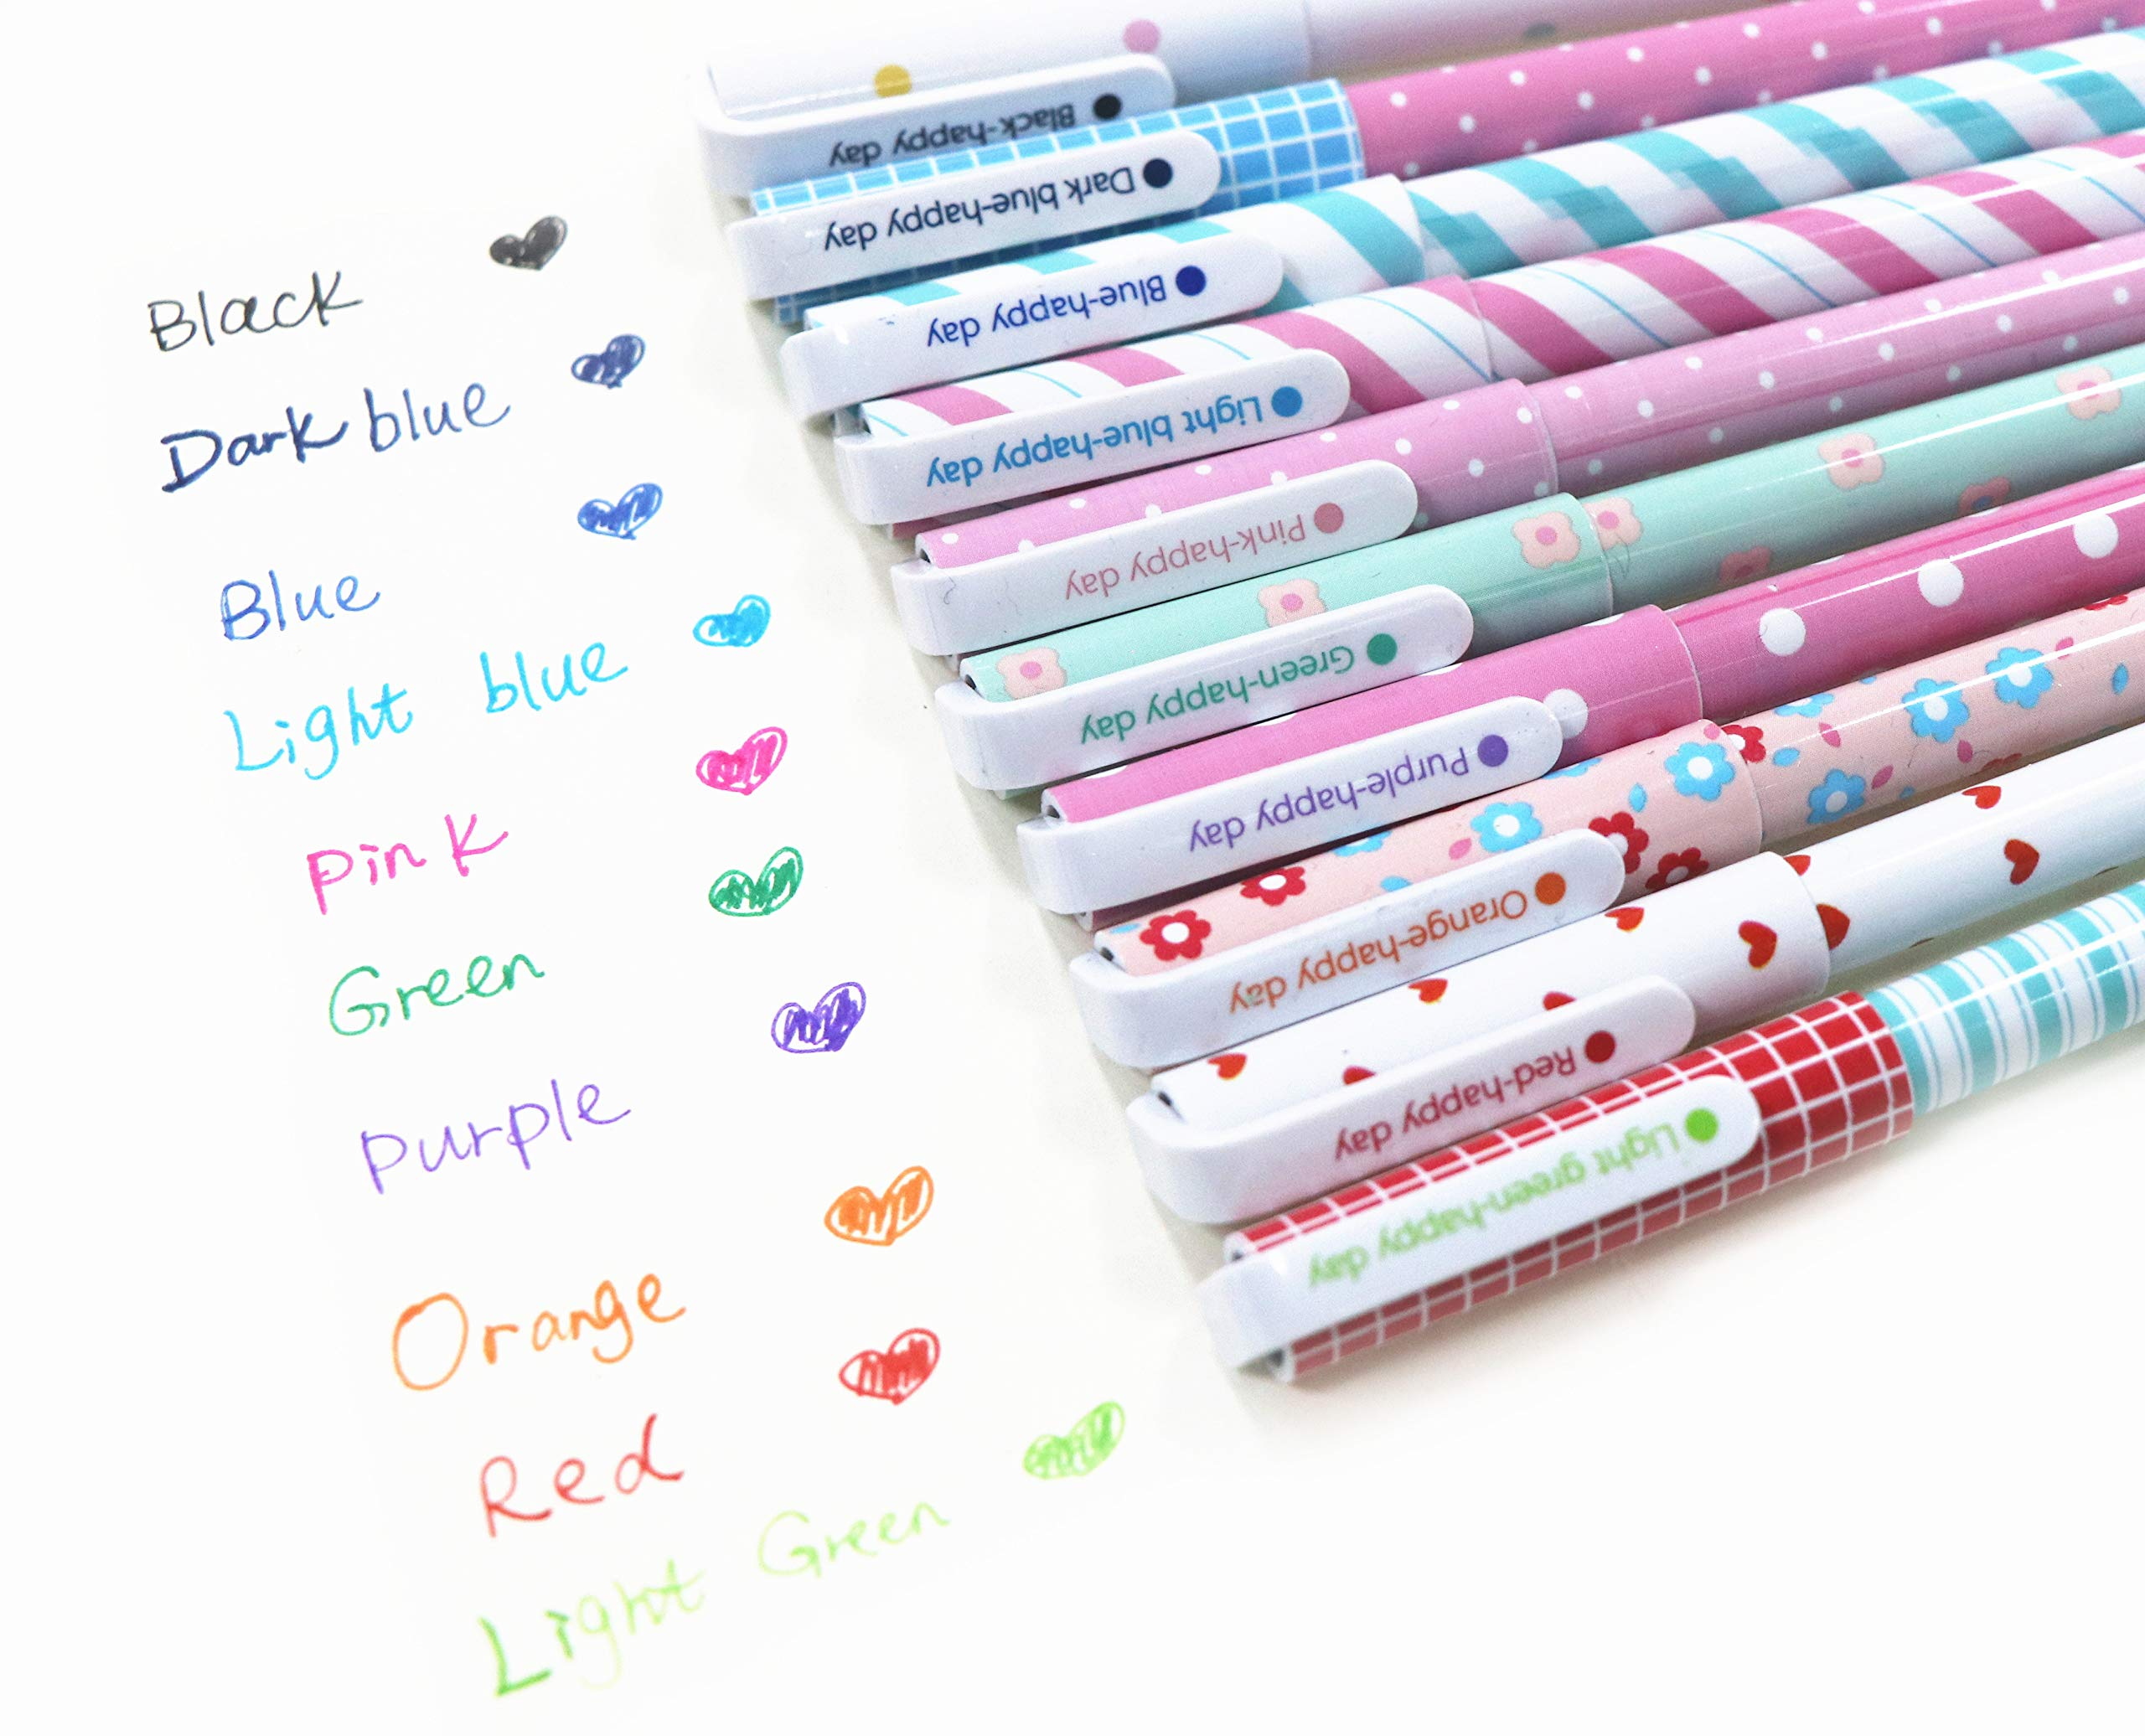 Cute Color Pens for Women Toshine Colorful Gel Ink Pens Multi Colored Pens for Bullet Journal Writing Roller Ball Fine Point Pens for Kids Girls Children Students Teens Gifts 10 Pcs (0.5 mm)